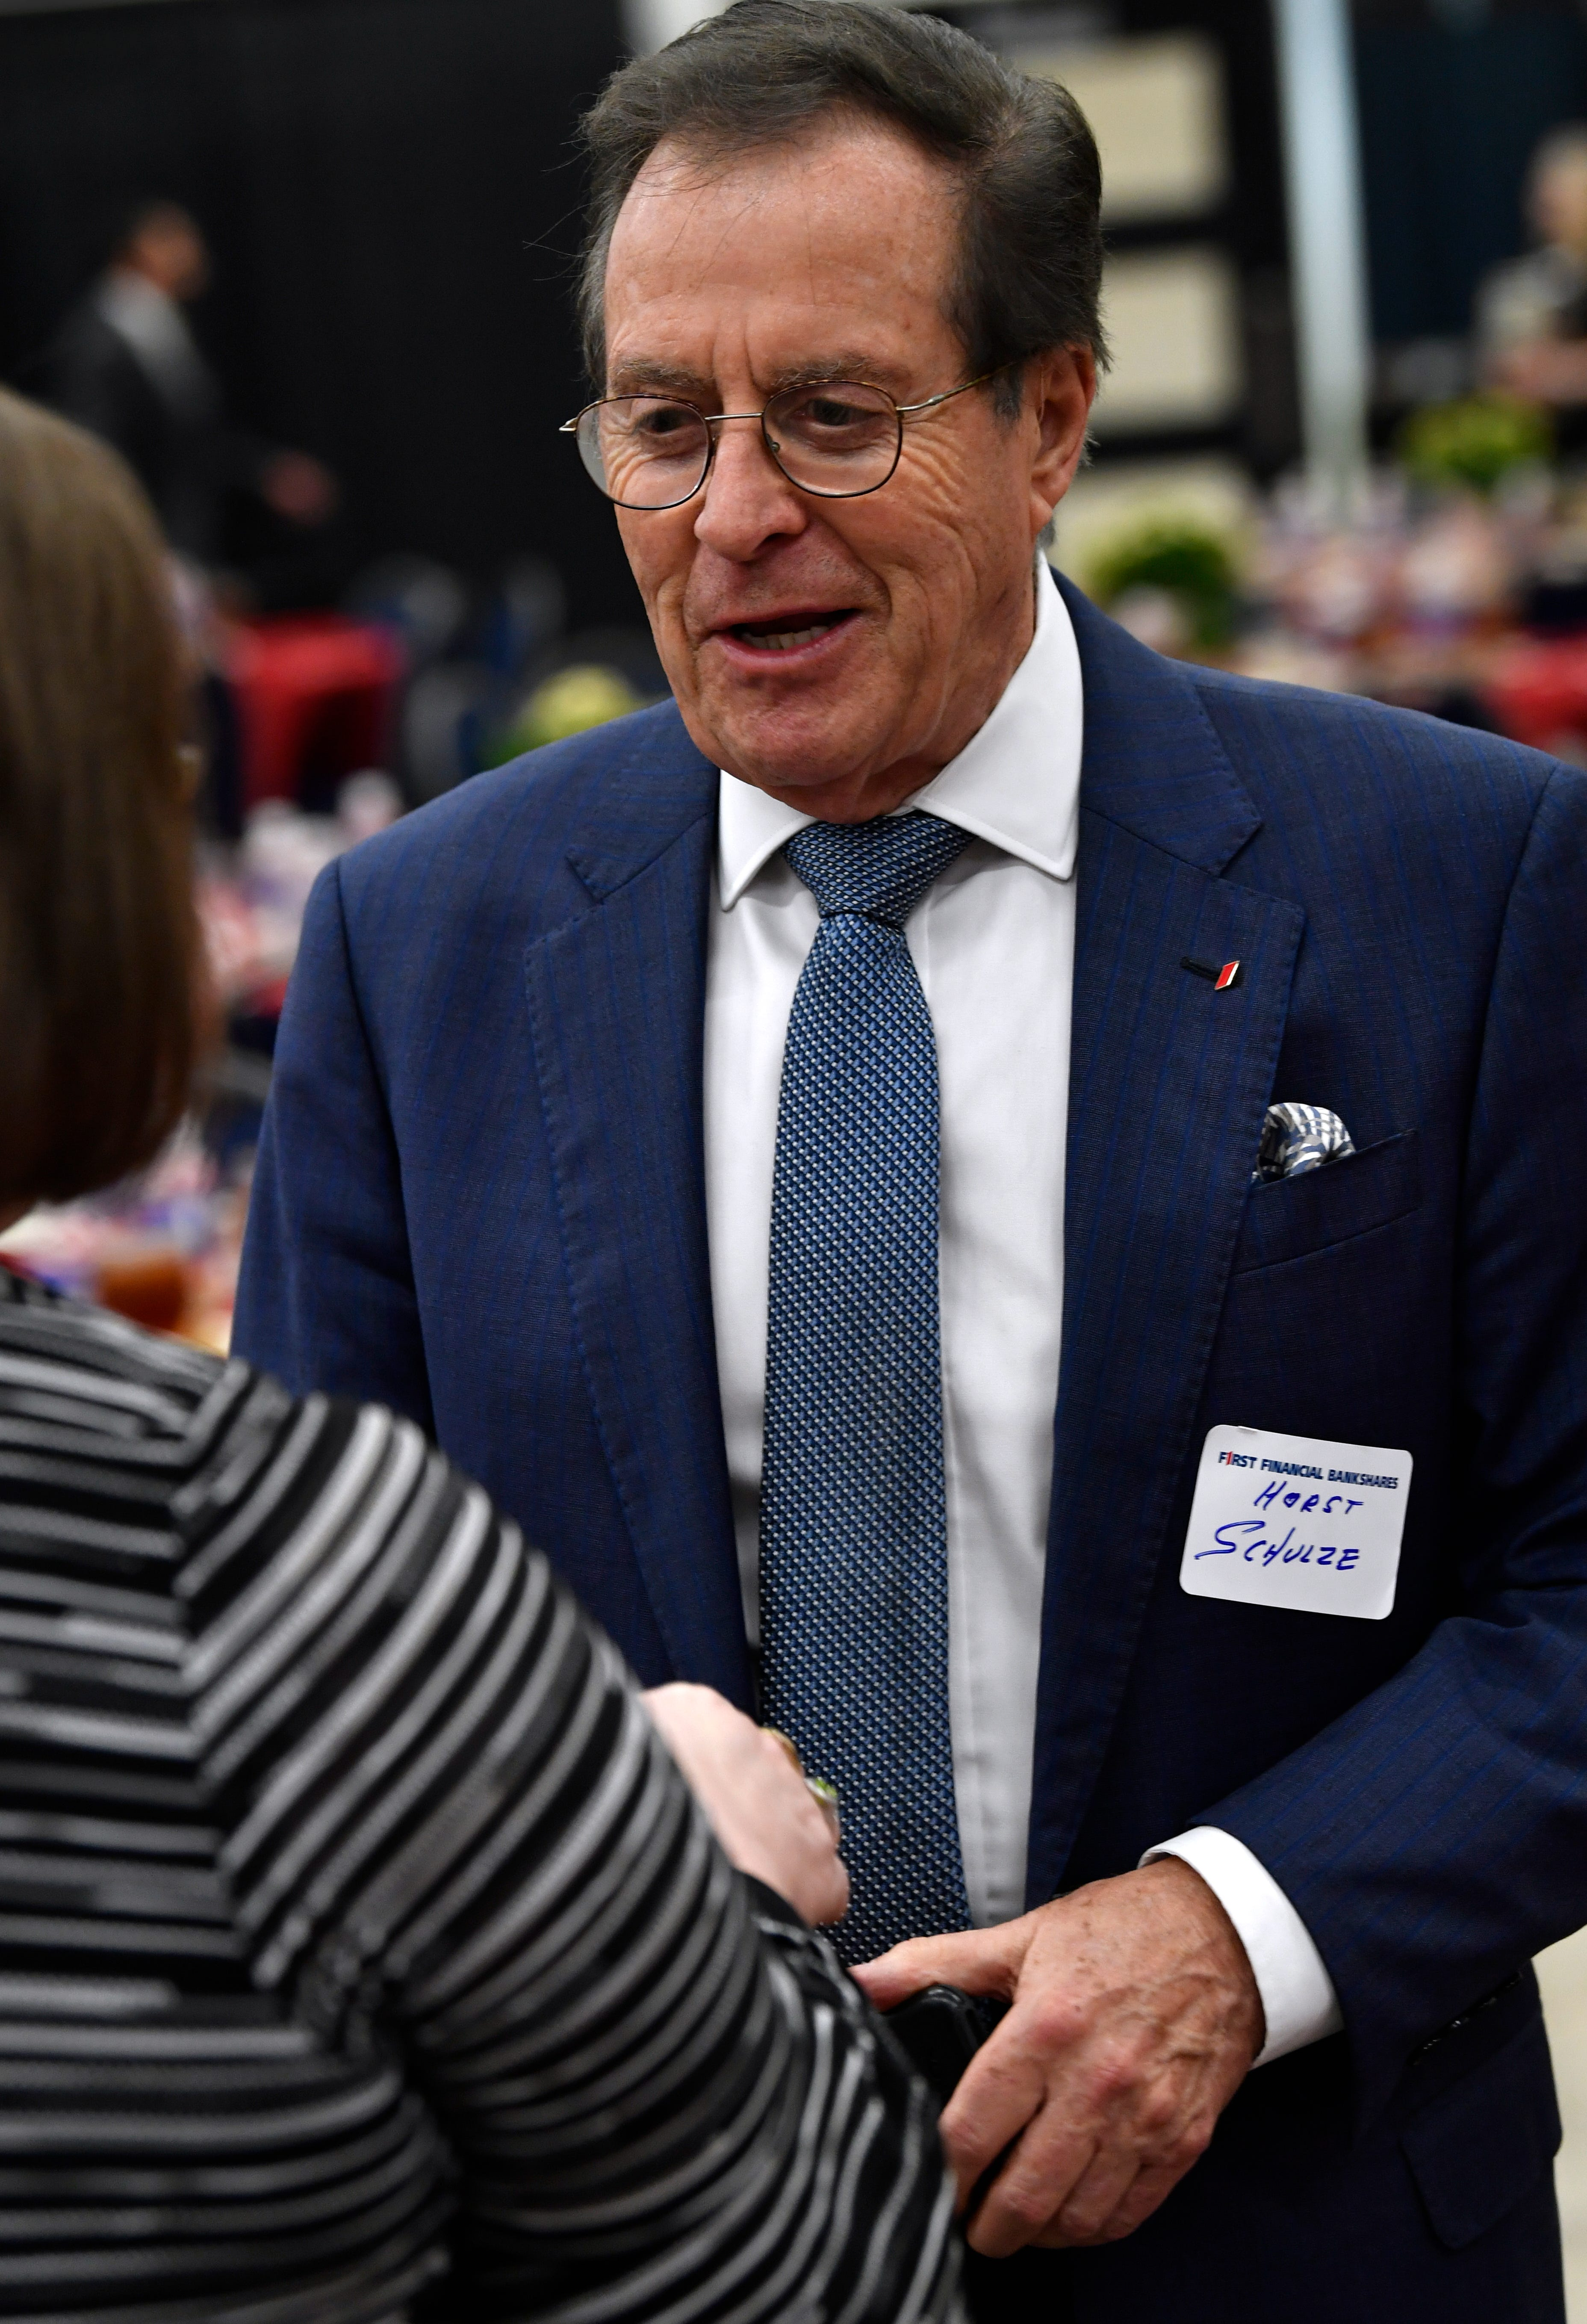 """Horst Schulze, the former president of Ritz-Carlton, greets an attendee at the luncheon after the First Financial Bankshares annual meeting Tuesday. Schulze has authored a book on customer service, """"Excellence Wins,"""" which was provided free to guests."""